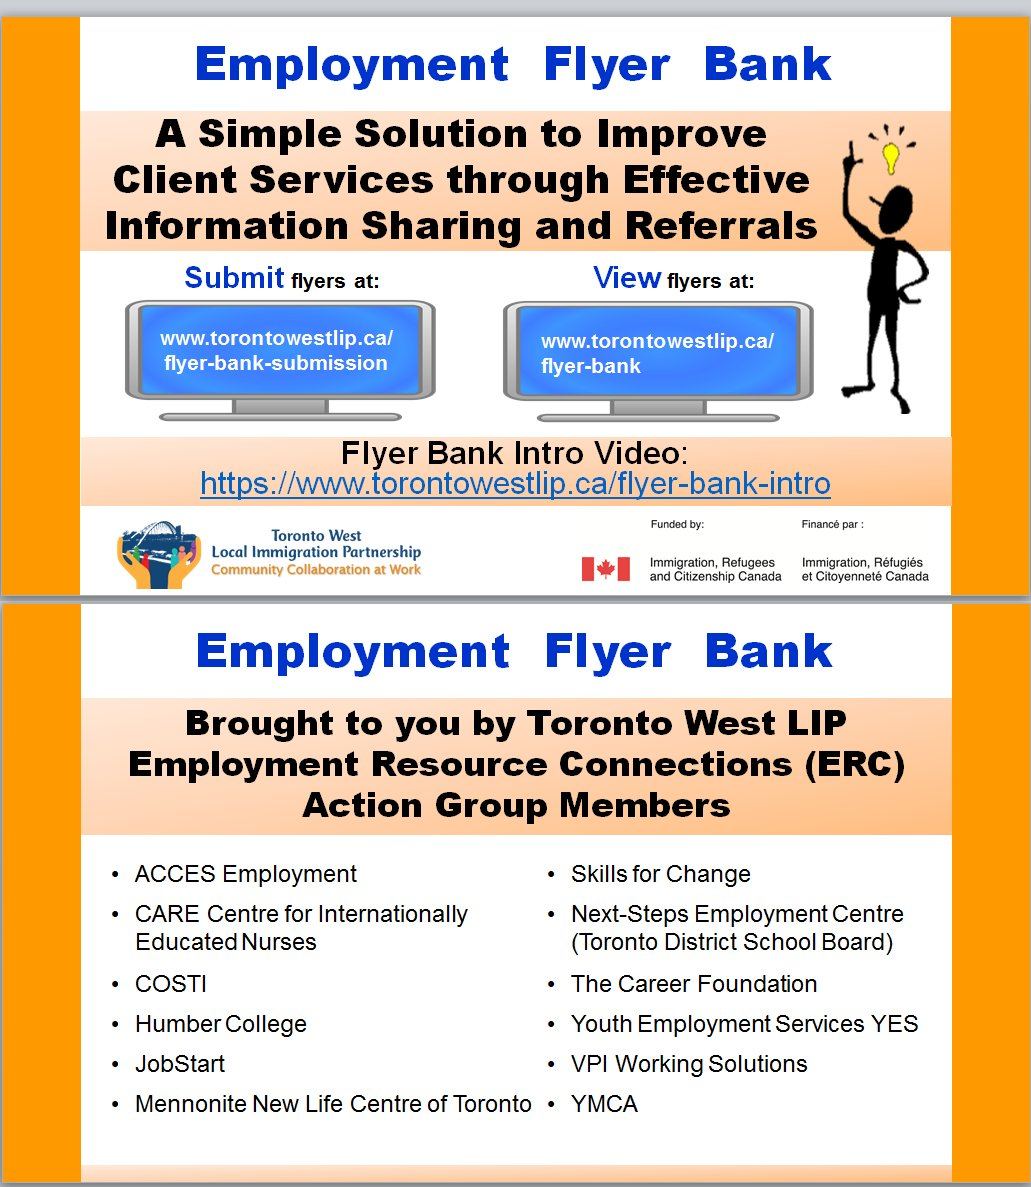 employment flyer bank created by the toronto west lip submit flyers http www torontowestlip ca flyer bank submission view flyrs